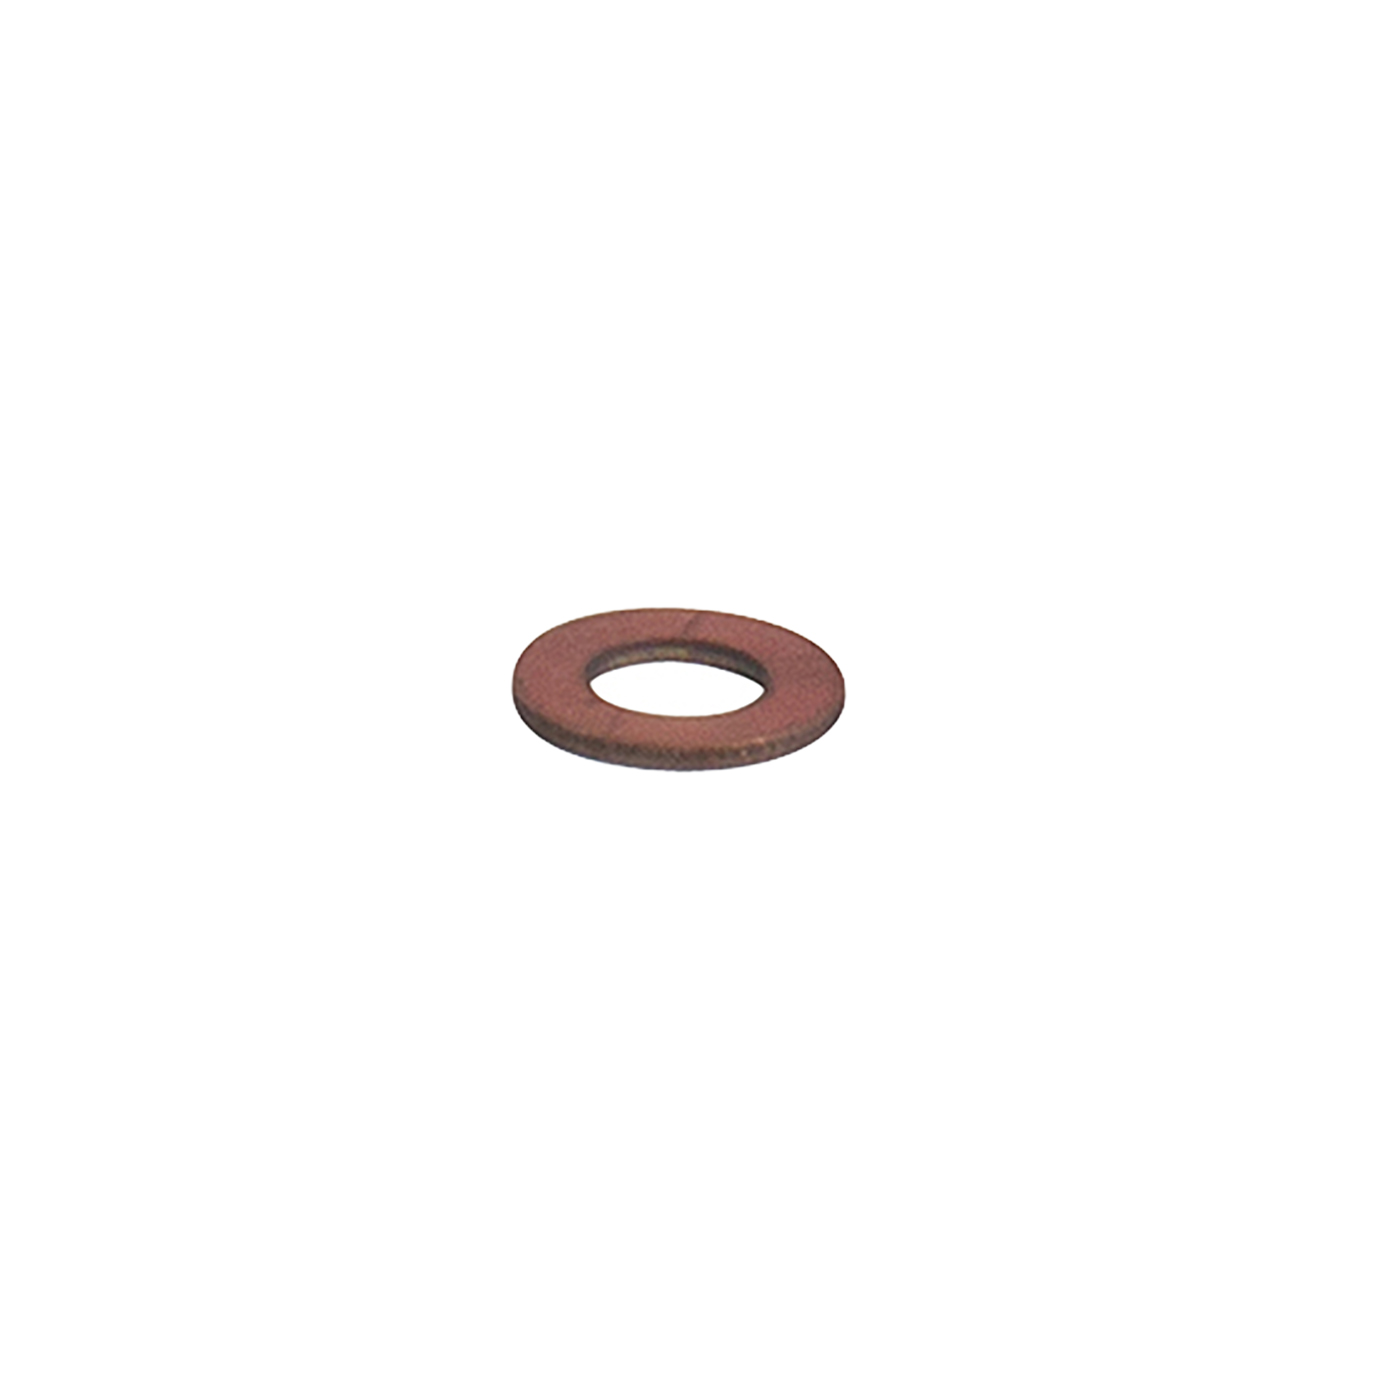 YP DOF9-11 - Copper washer for Ford 9